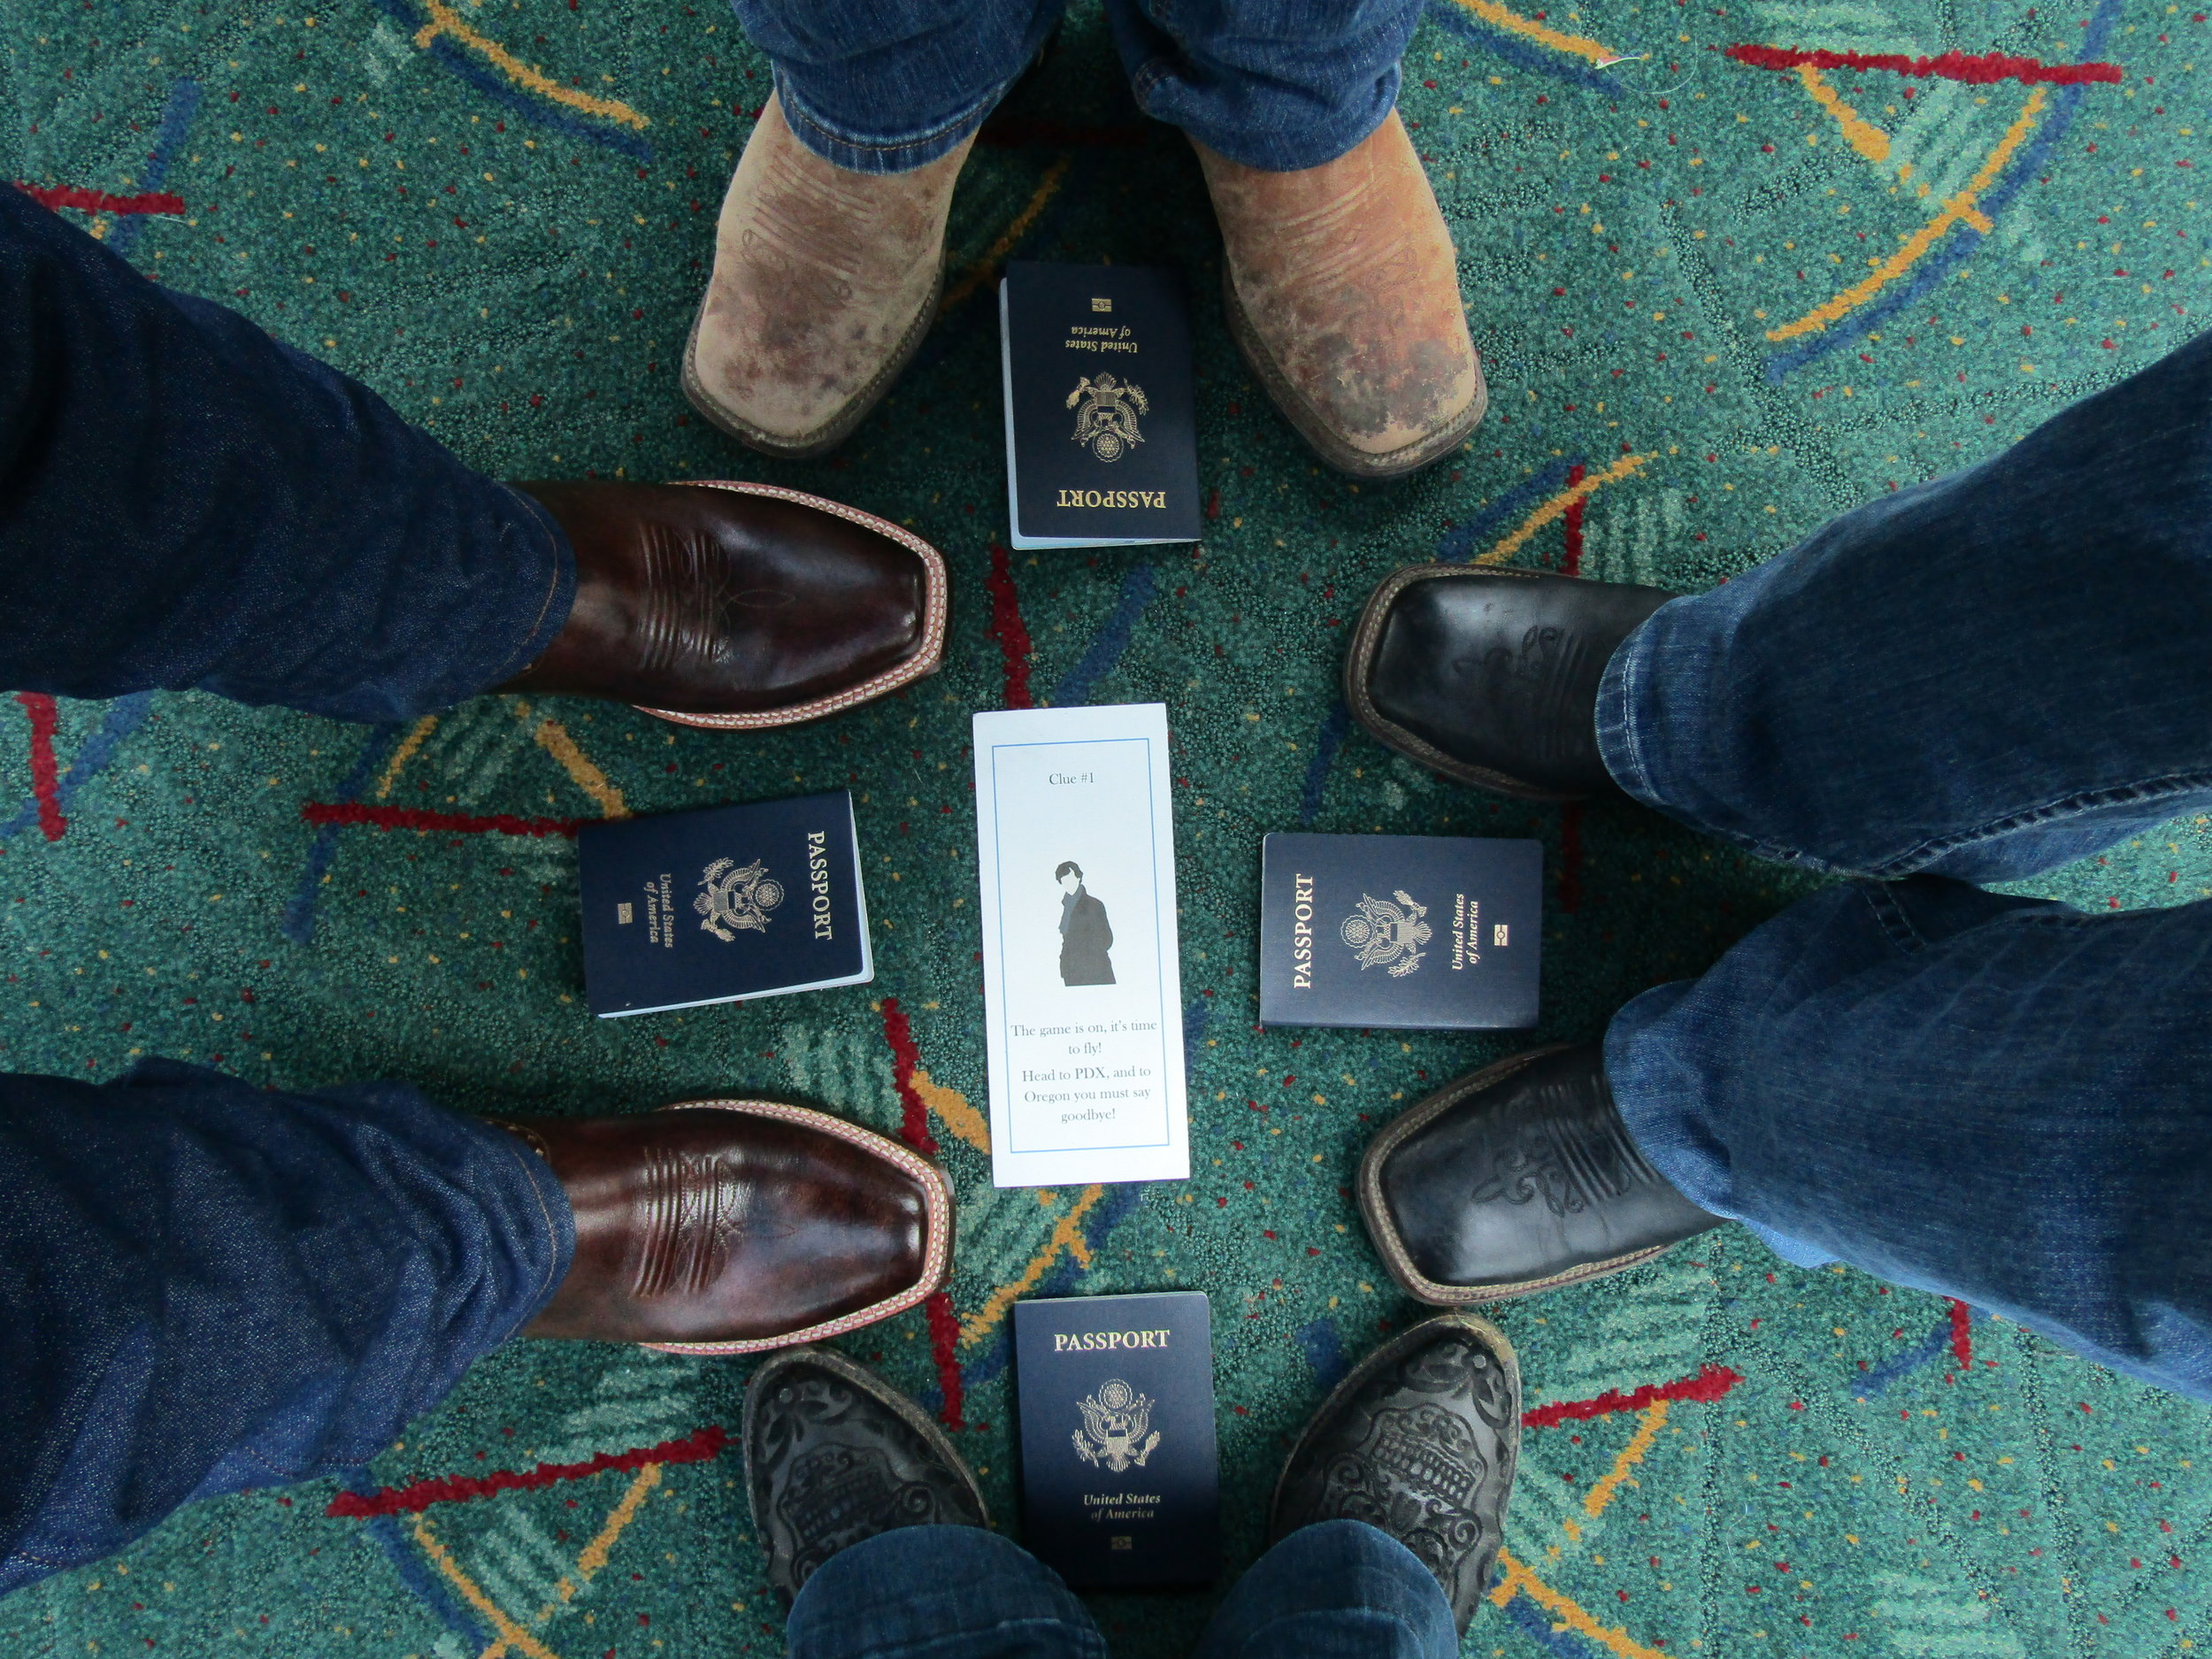 It is customary in the pacific northwest that anytime you step foot in the Portland Airport (PDX) you take a picture with your feet on the carpet. It's kind of a thing of legend here with it even being the Grand Marshall of a parade once! Rocking the  Lola's  and excited to go!